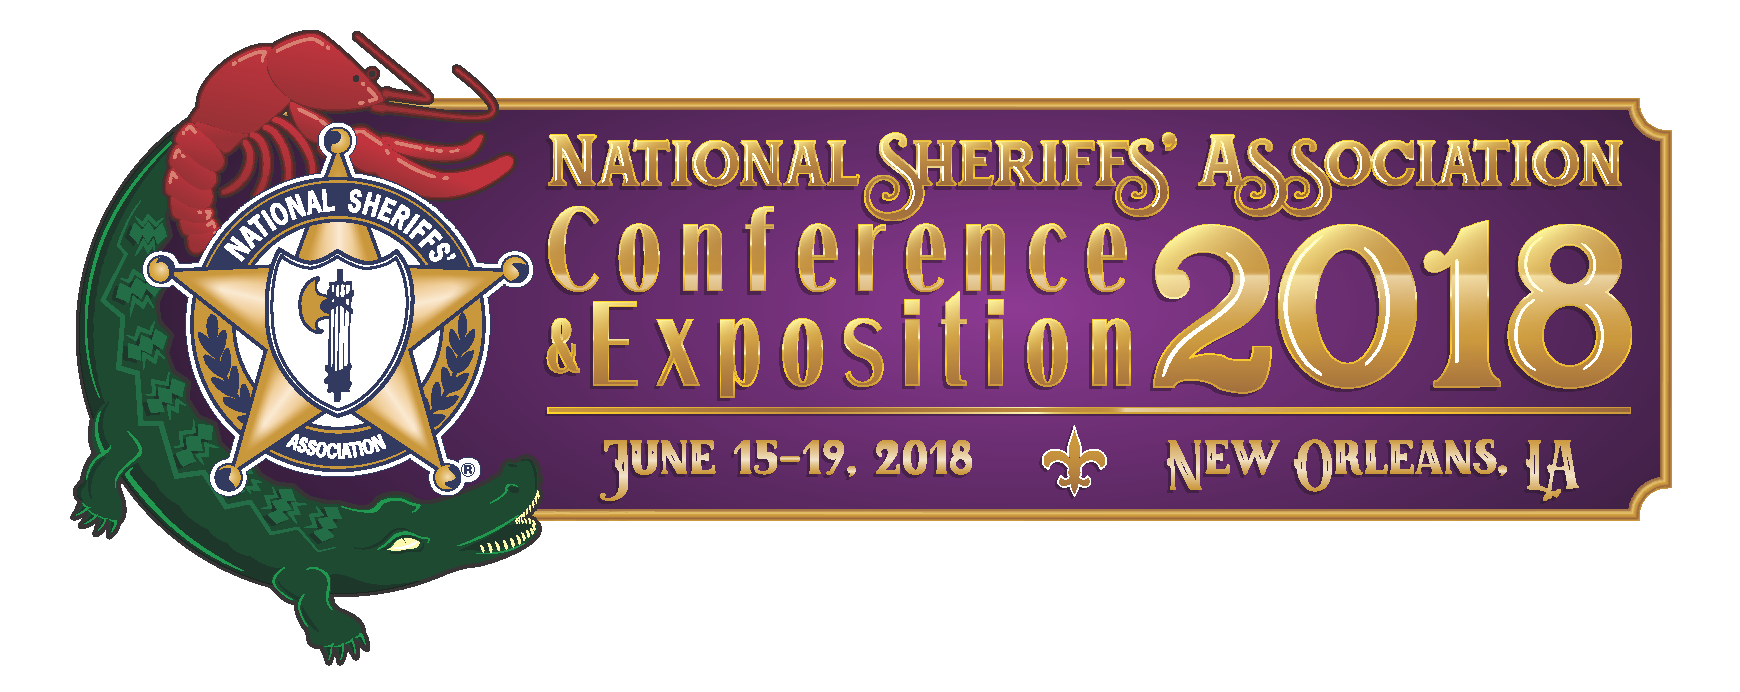 Morphix Technologies® Exhibiting at 2018 National Sheriffs' Association (NSA) Conference & Exposition